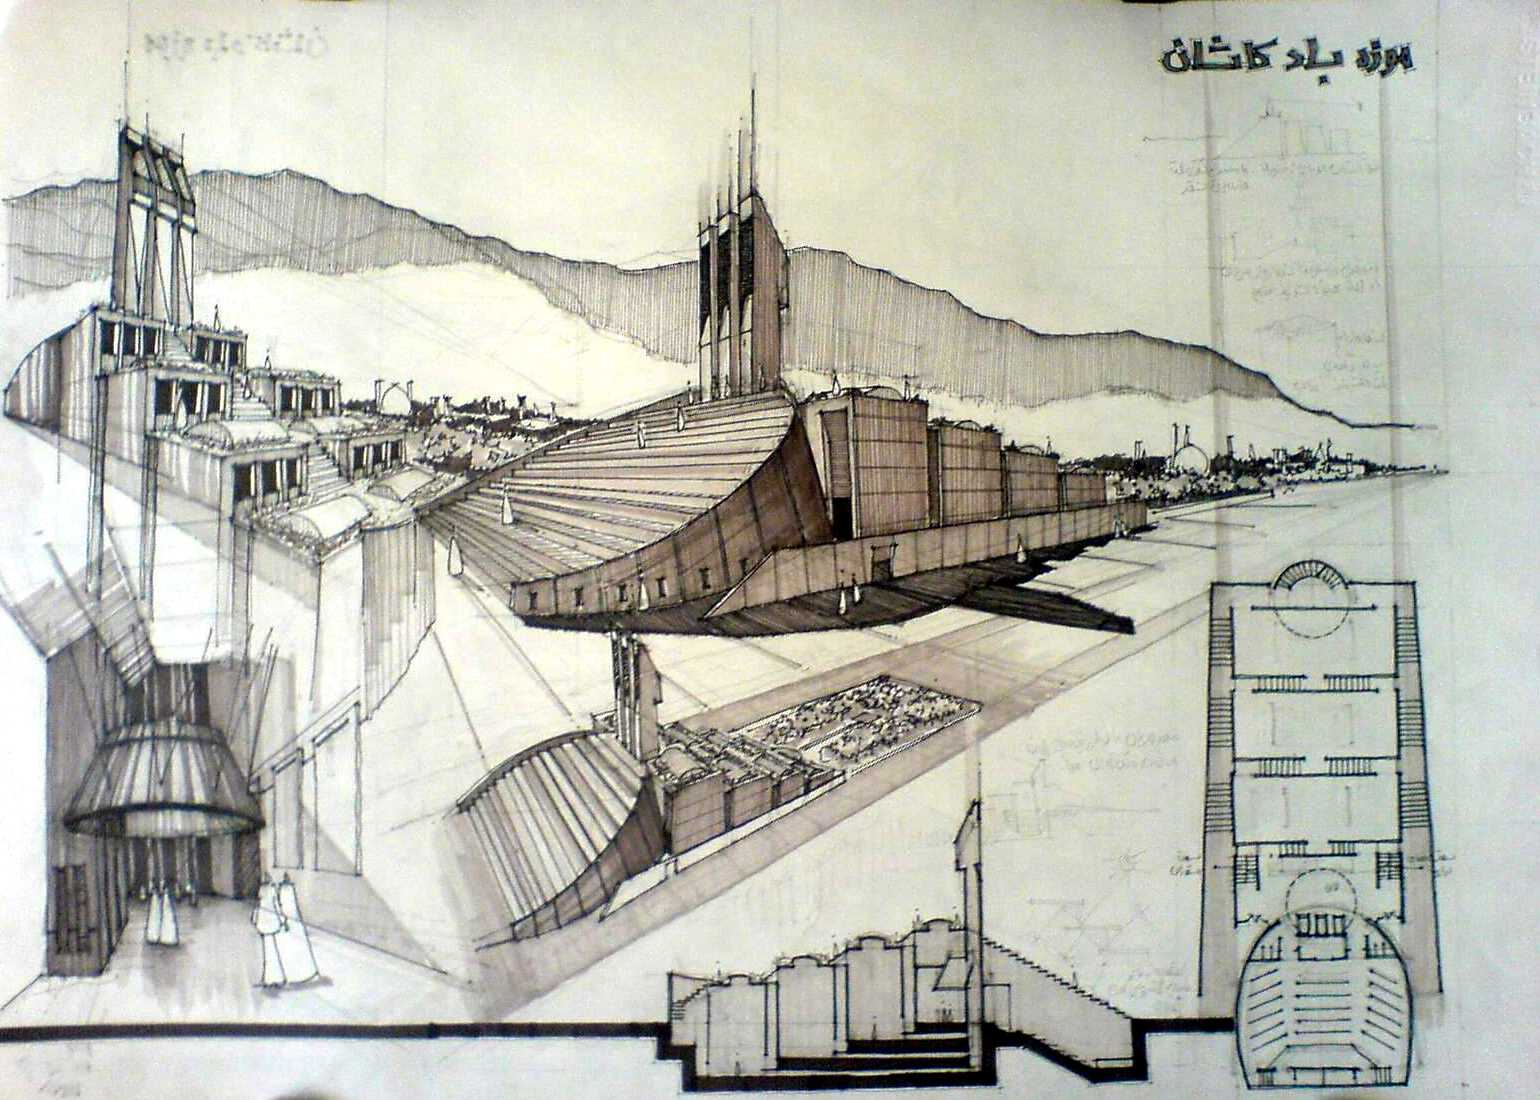 Architectural Sketchs By Ehsan Olian At Coroflot Com